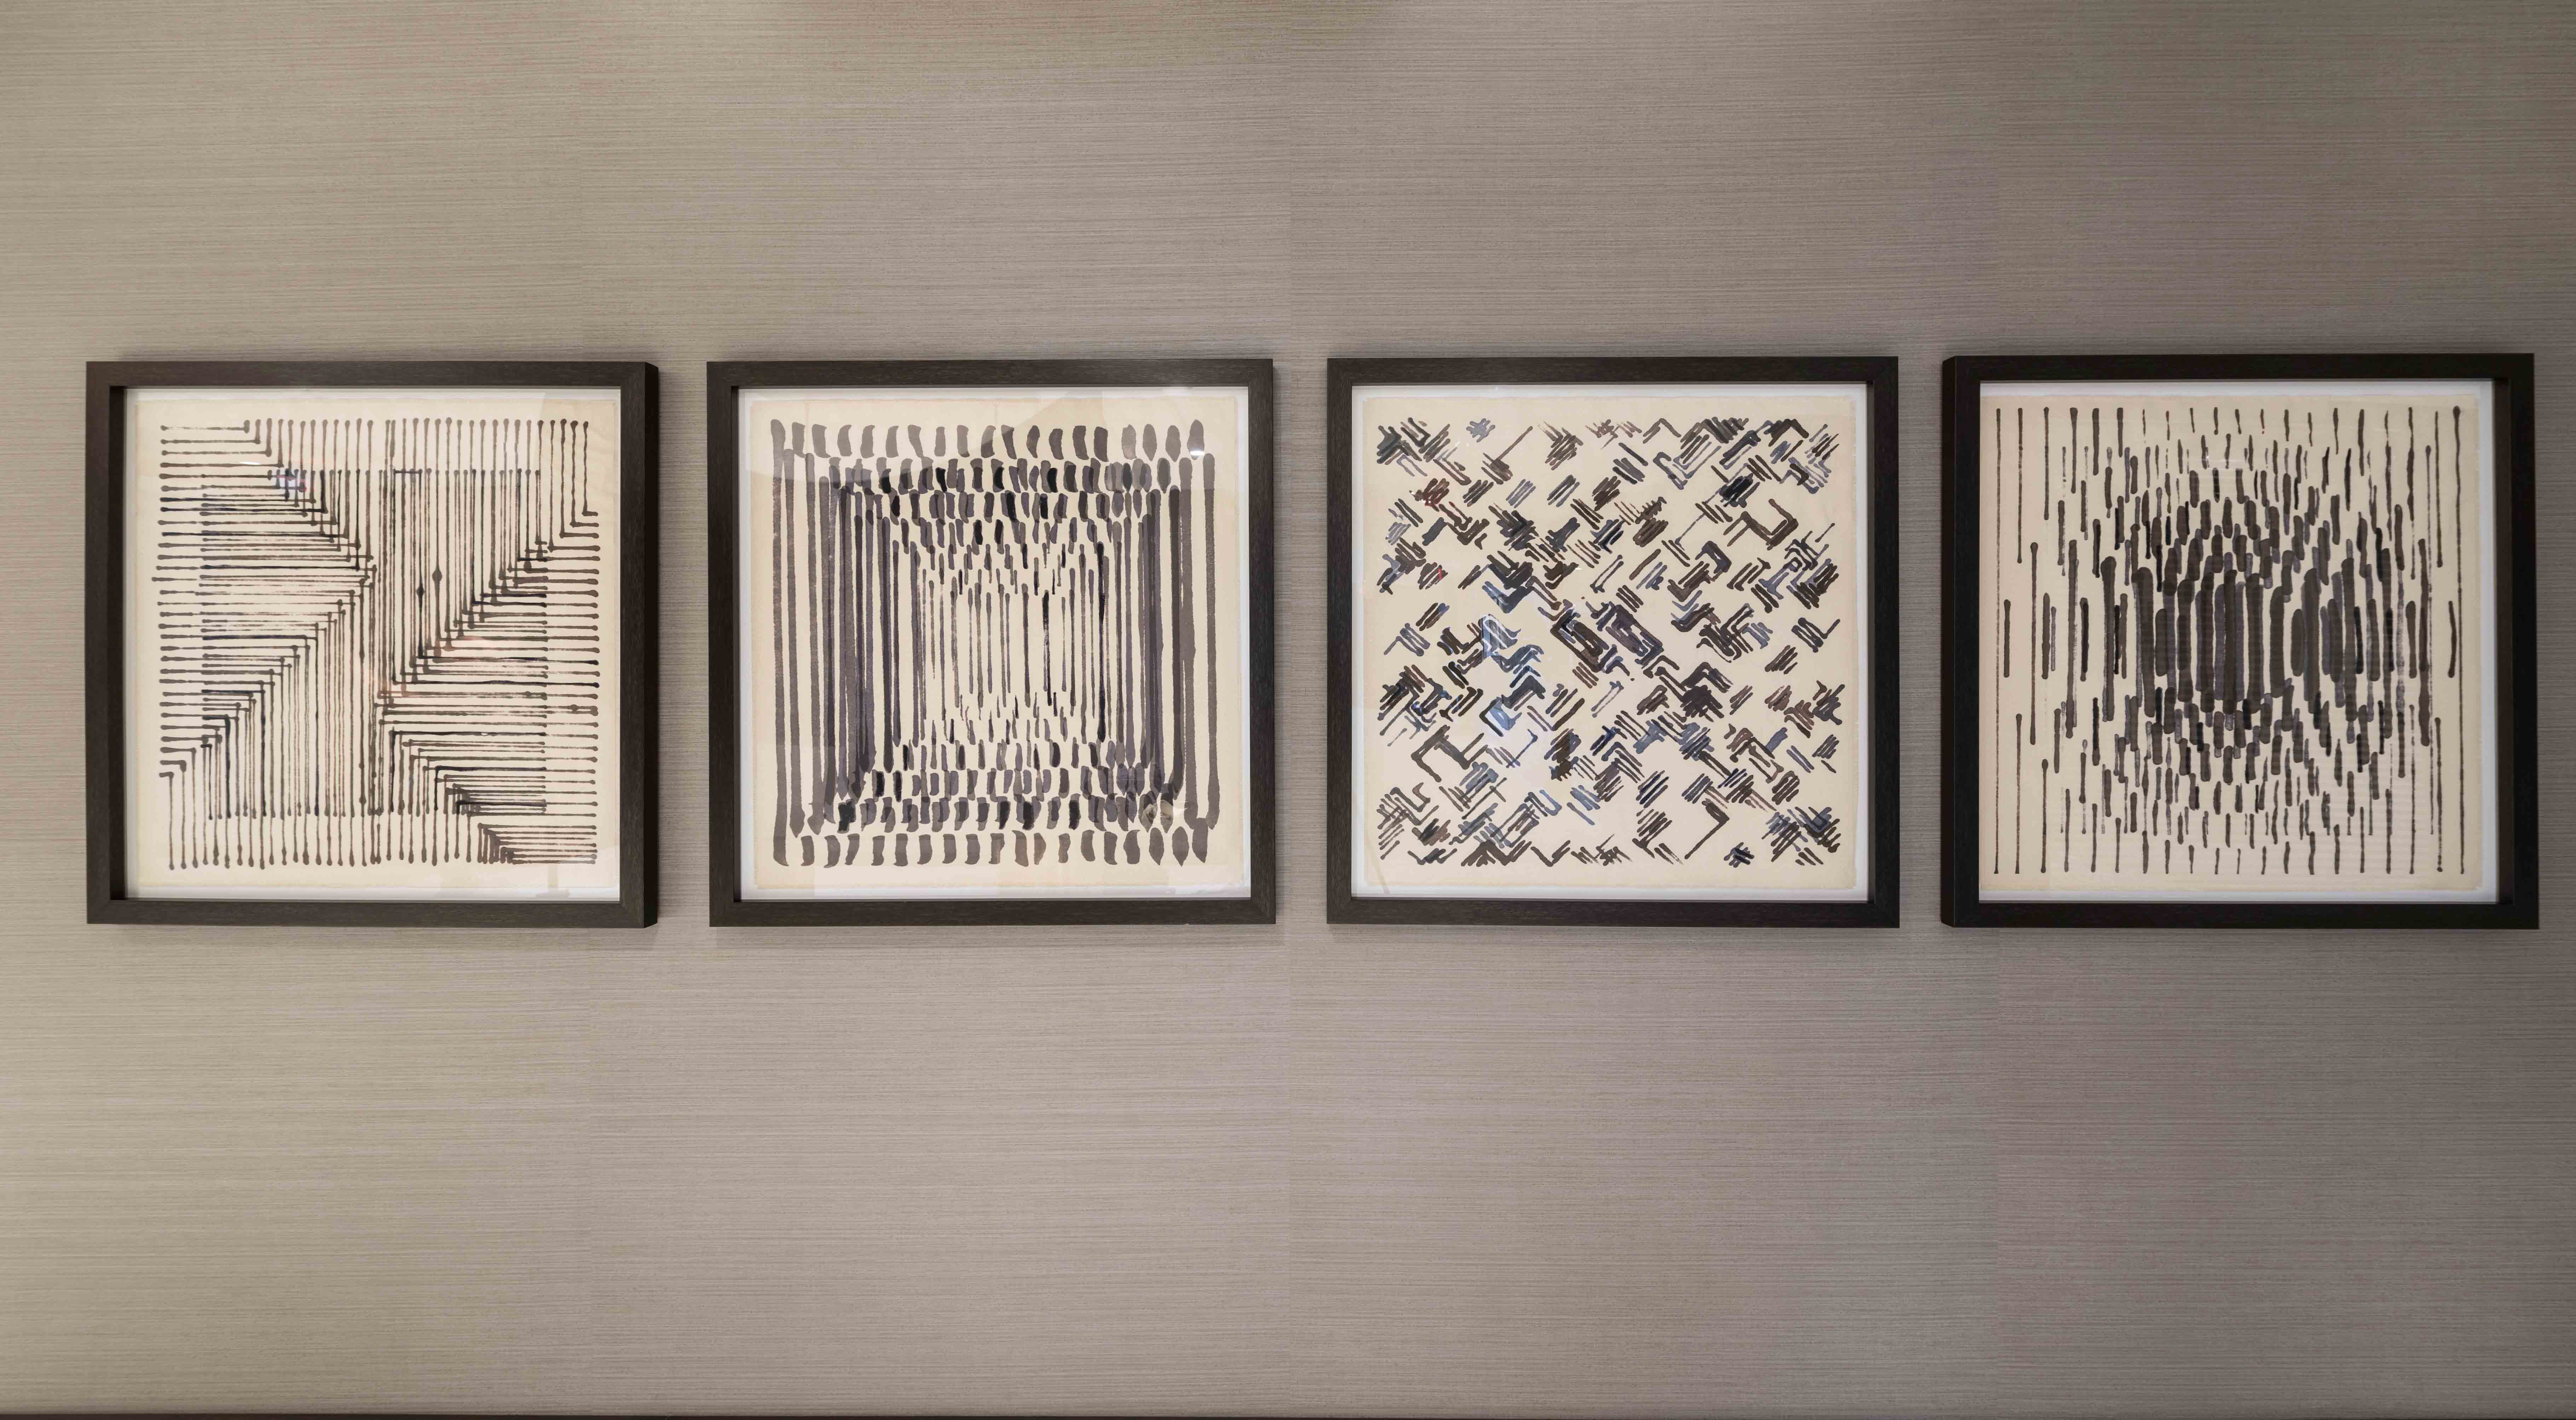 Four pieces of geometric abstract art hanging on wall